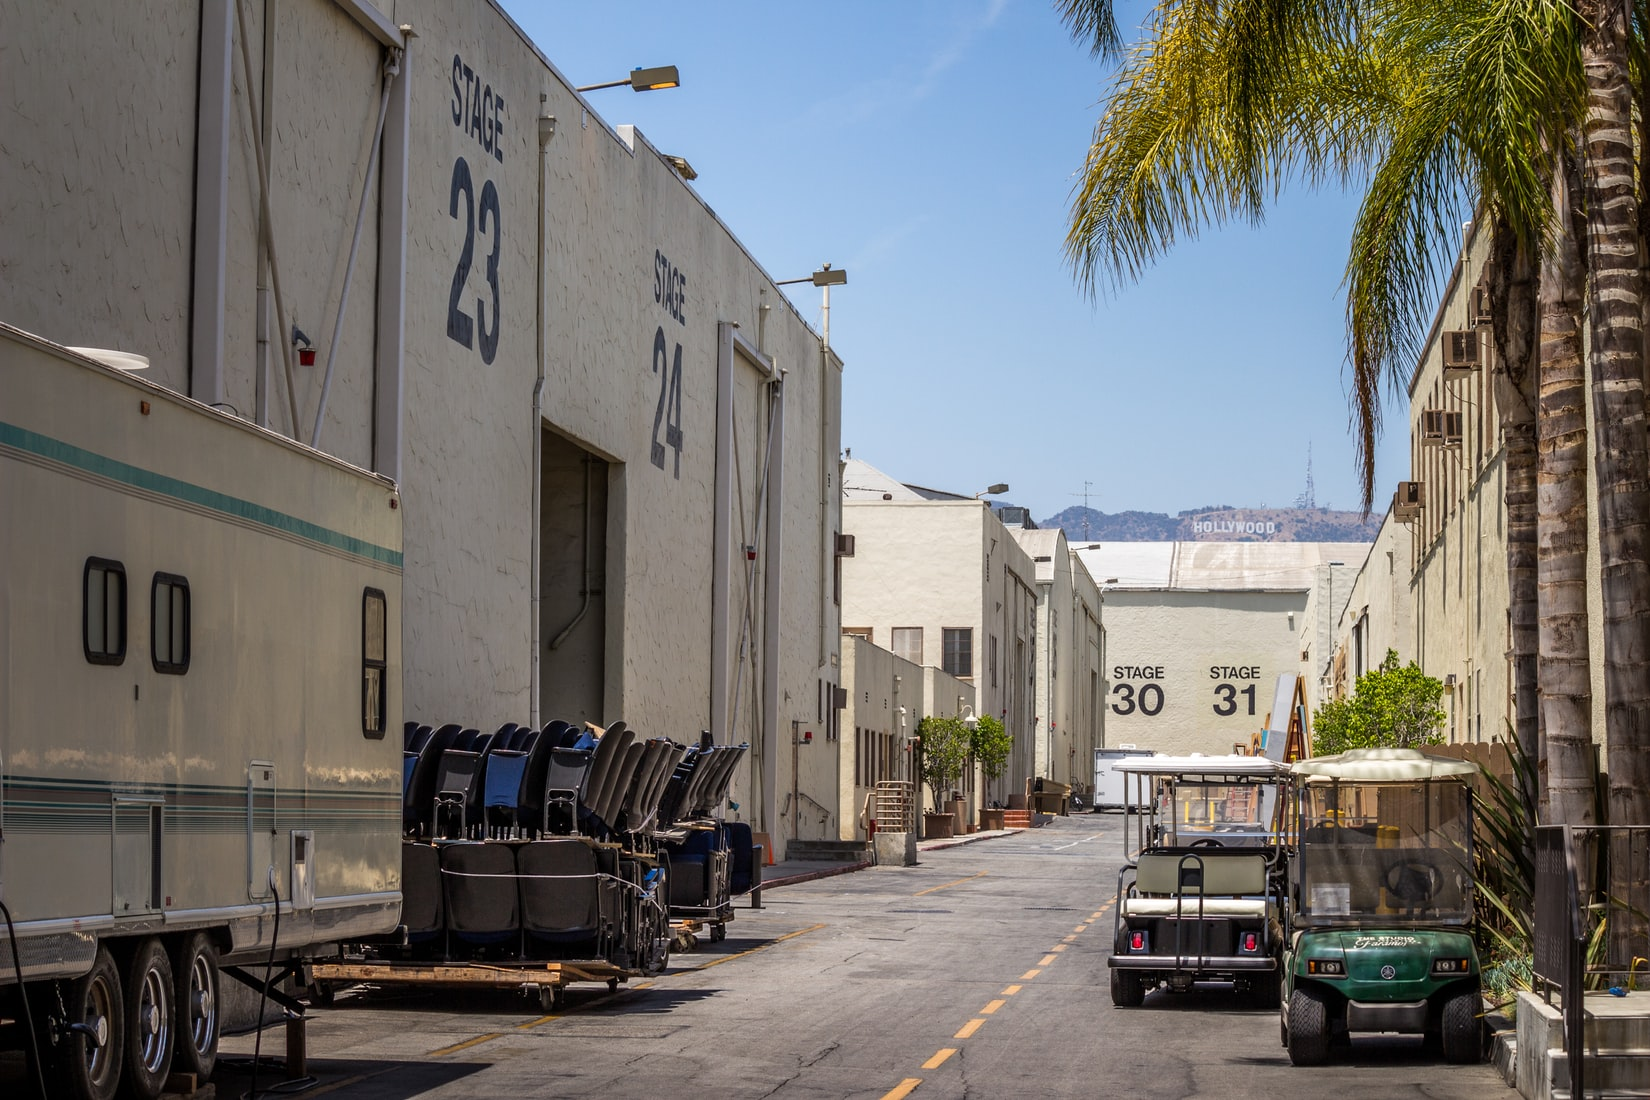 Hollywood movie studios, palm trees and carts parked on street